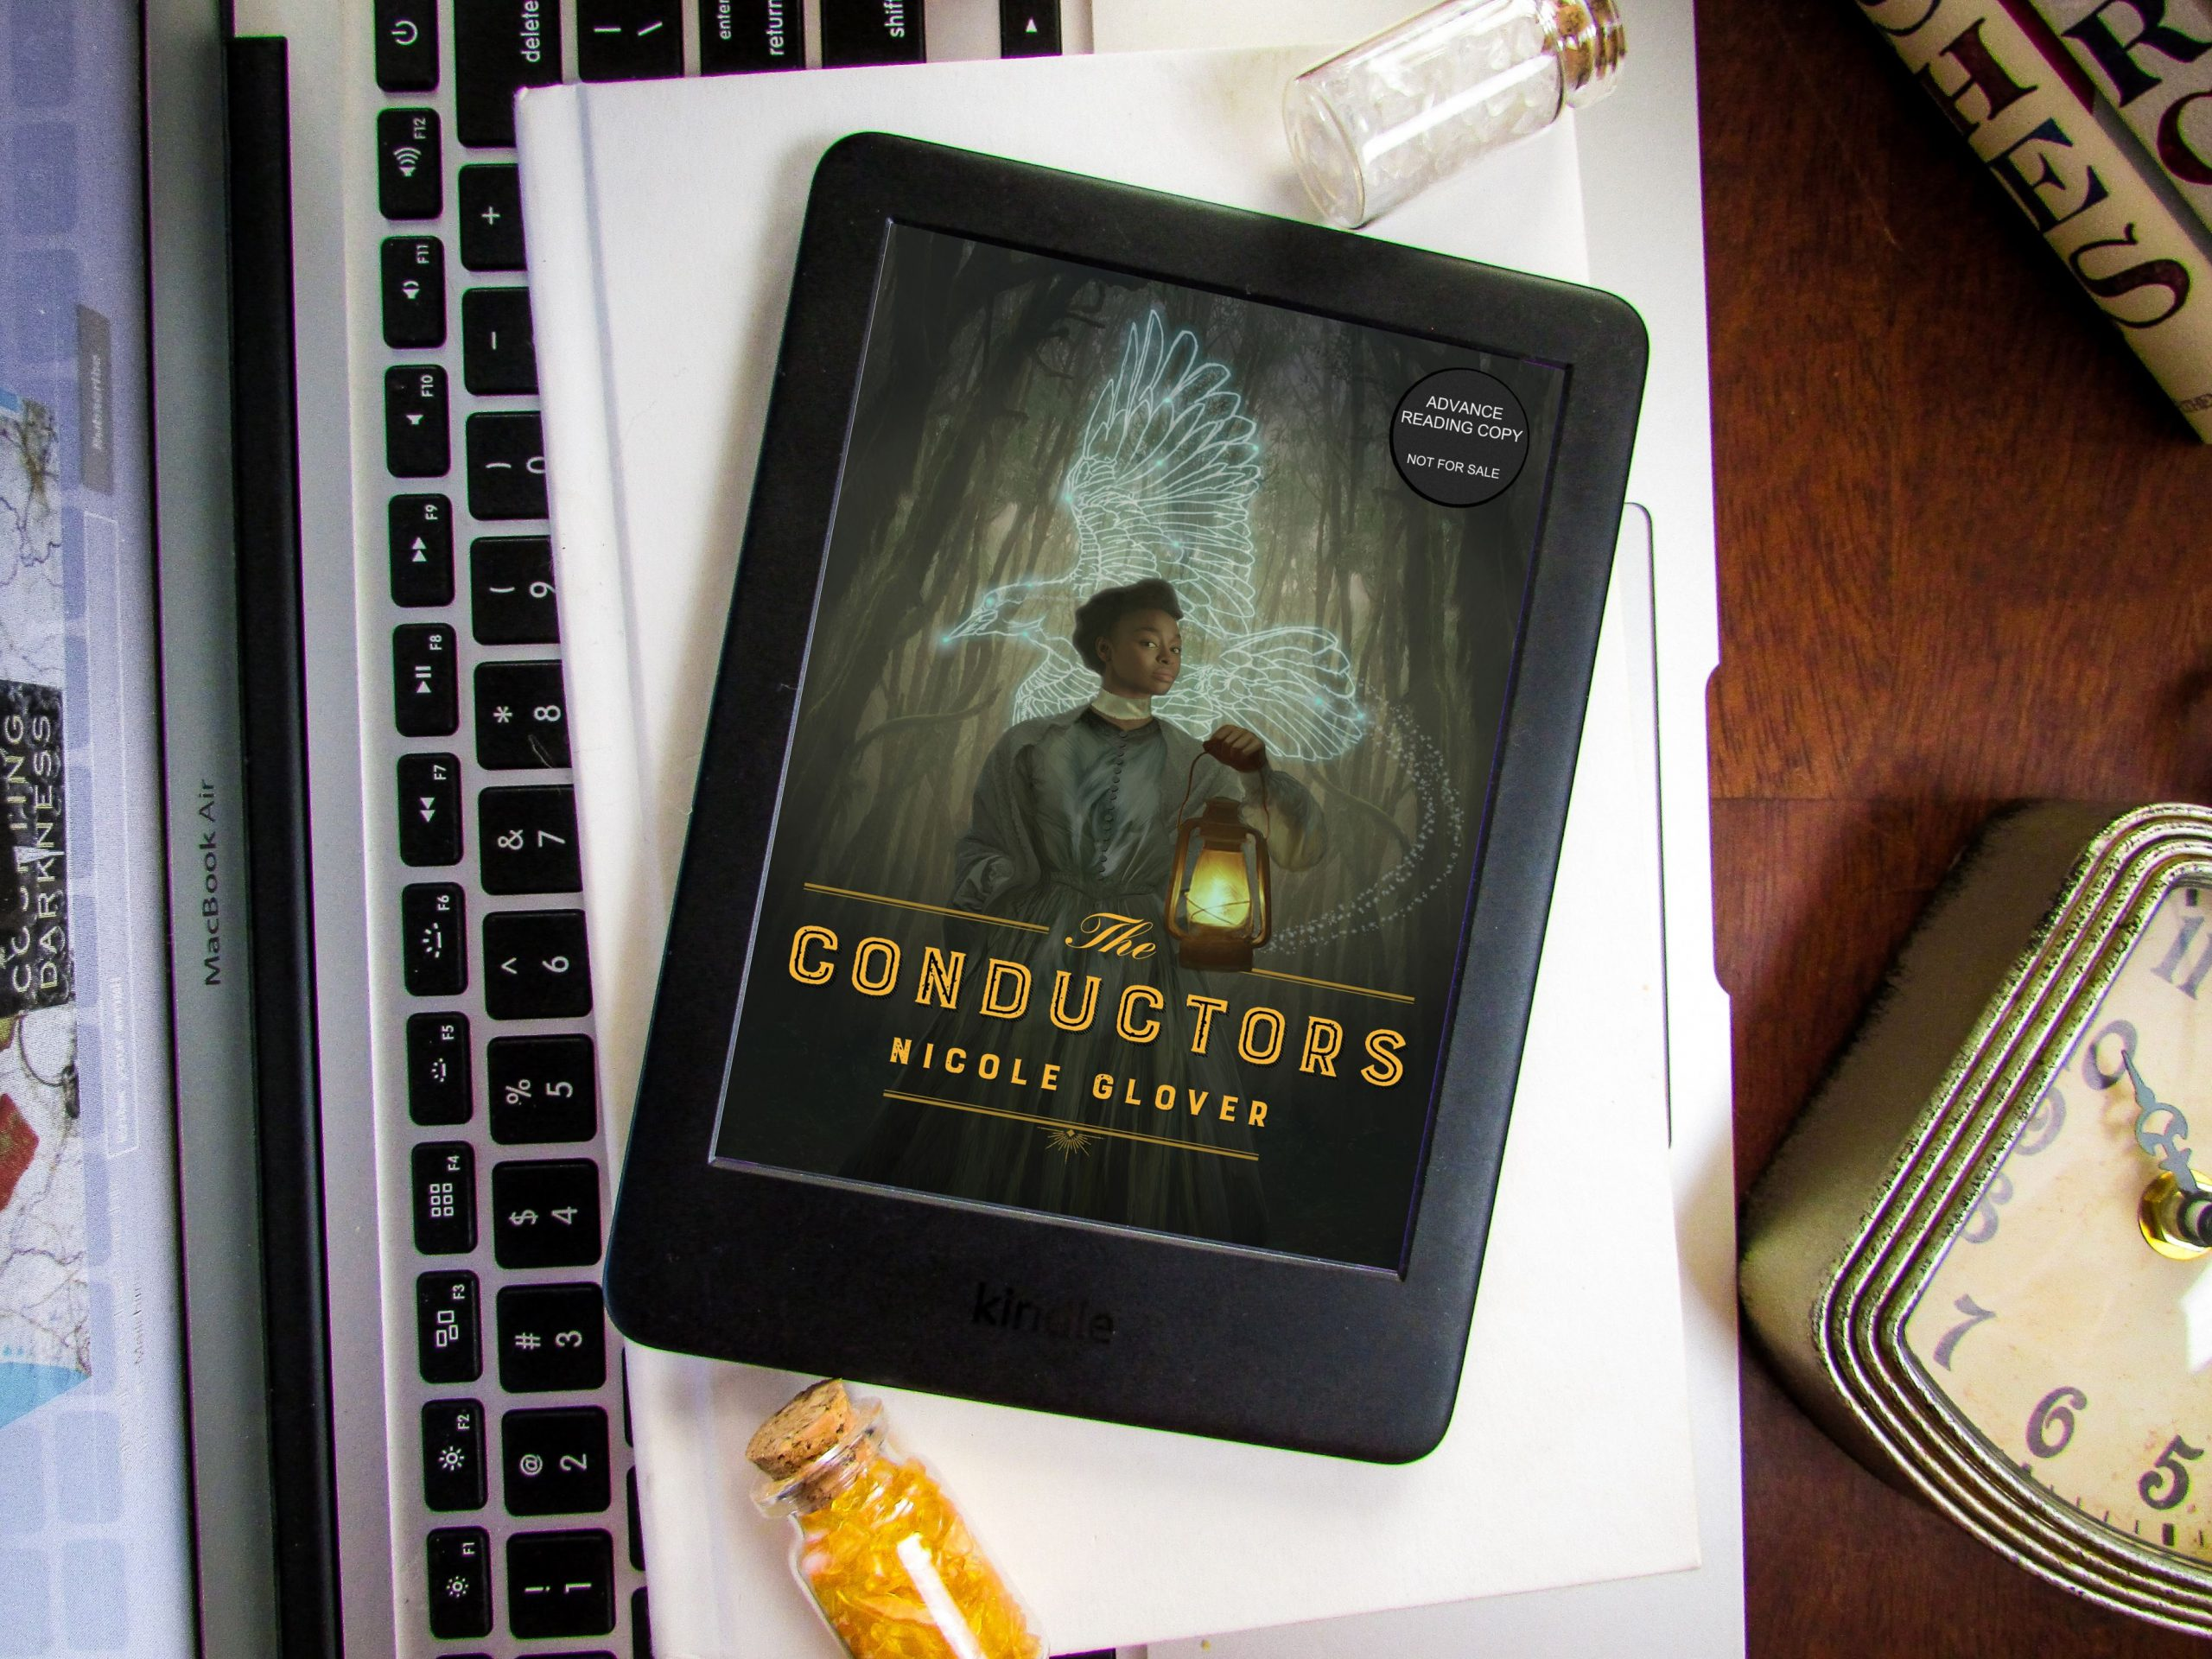 You are currently viewing The Conductors by Nicole Glover